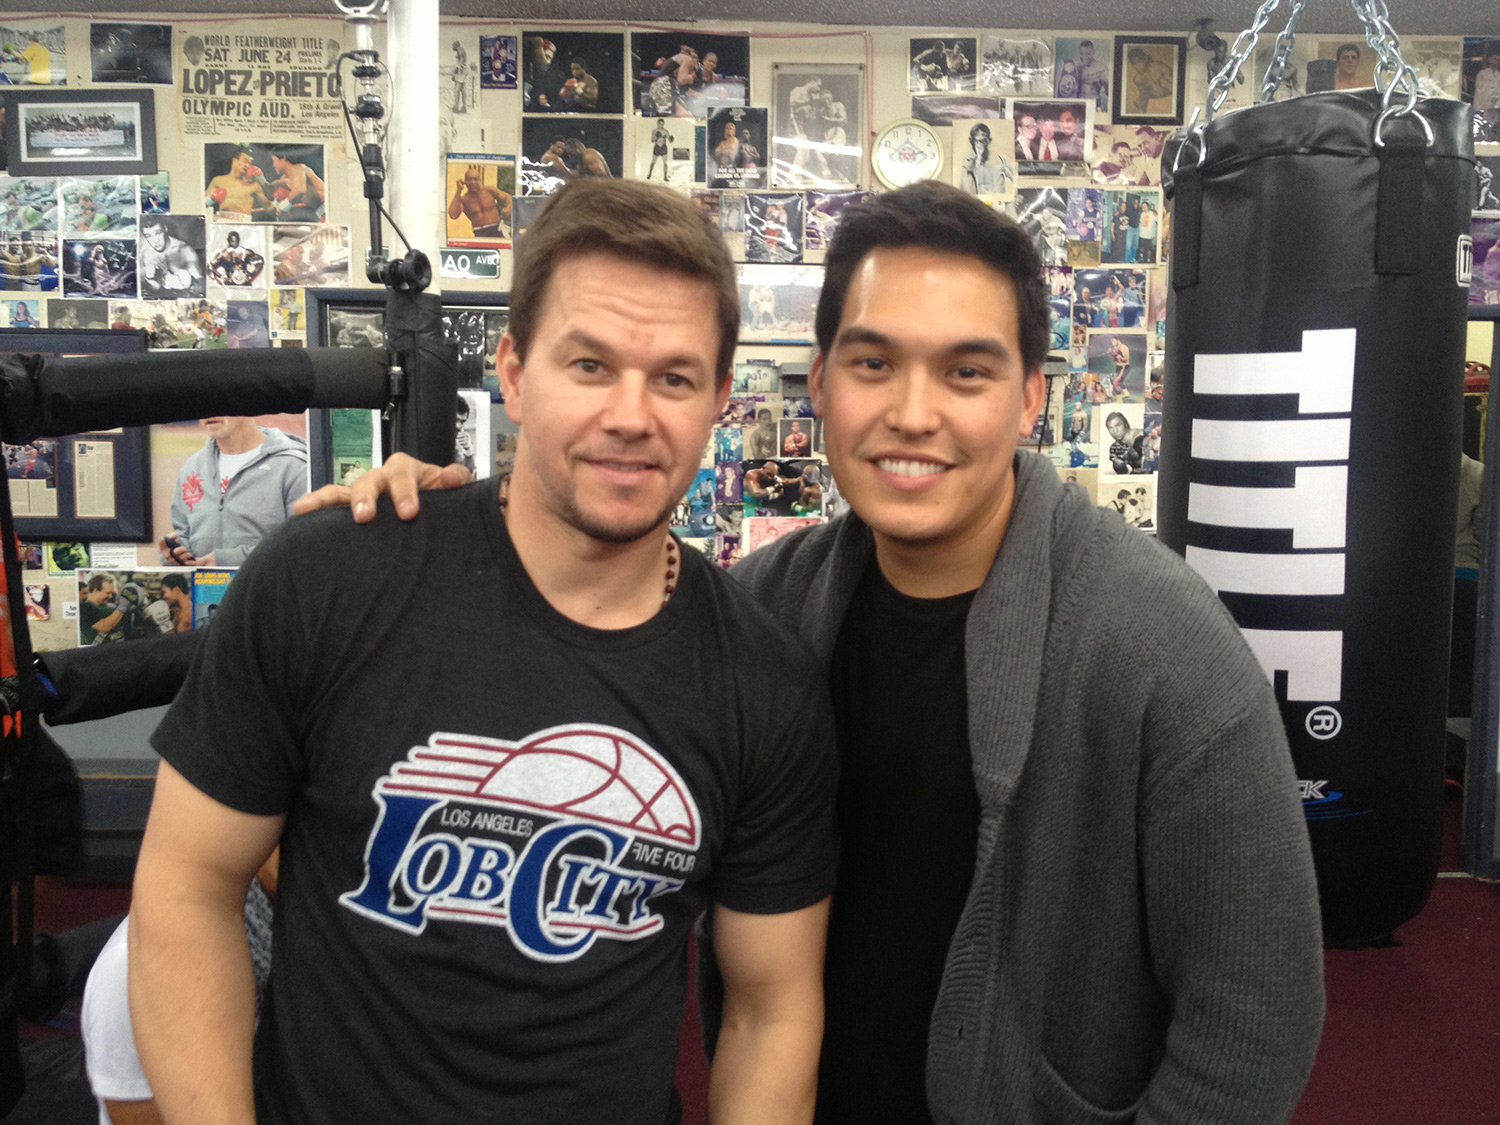 Actor Mark Wahlberg with Moore at Wildcard Boxing Gym (Photo courtesy of Ryan Moore)